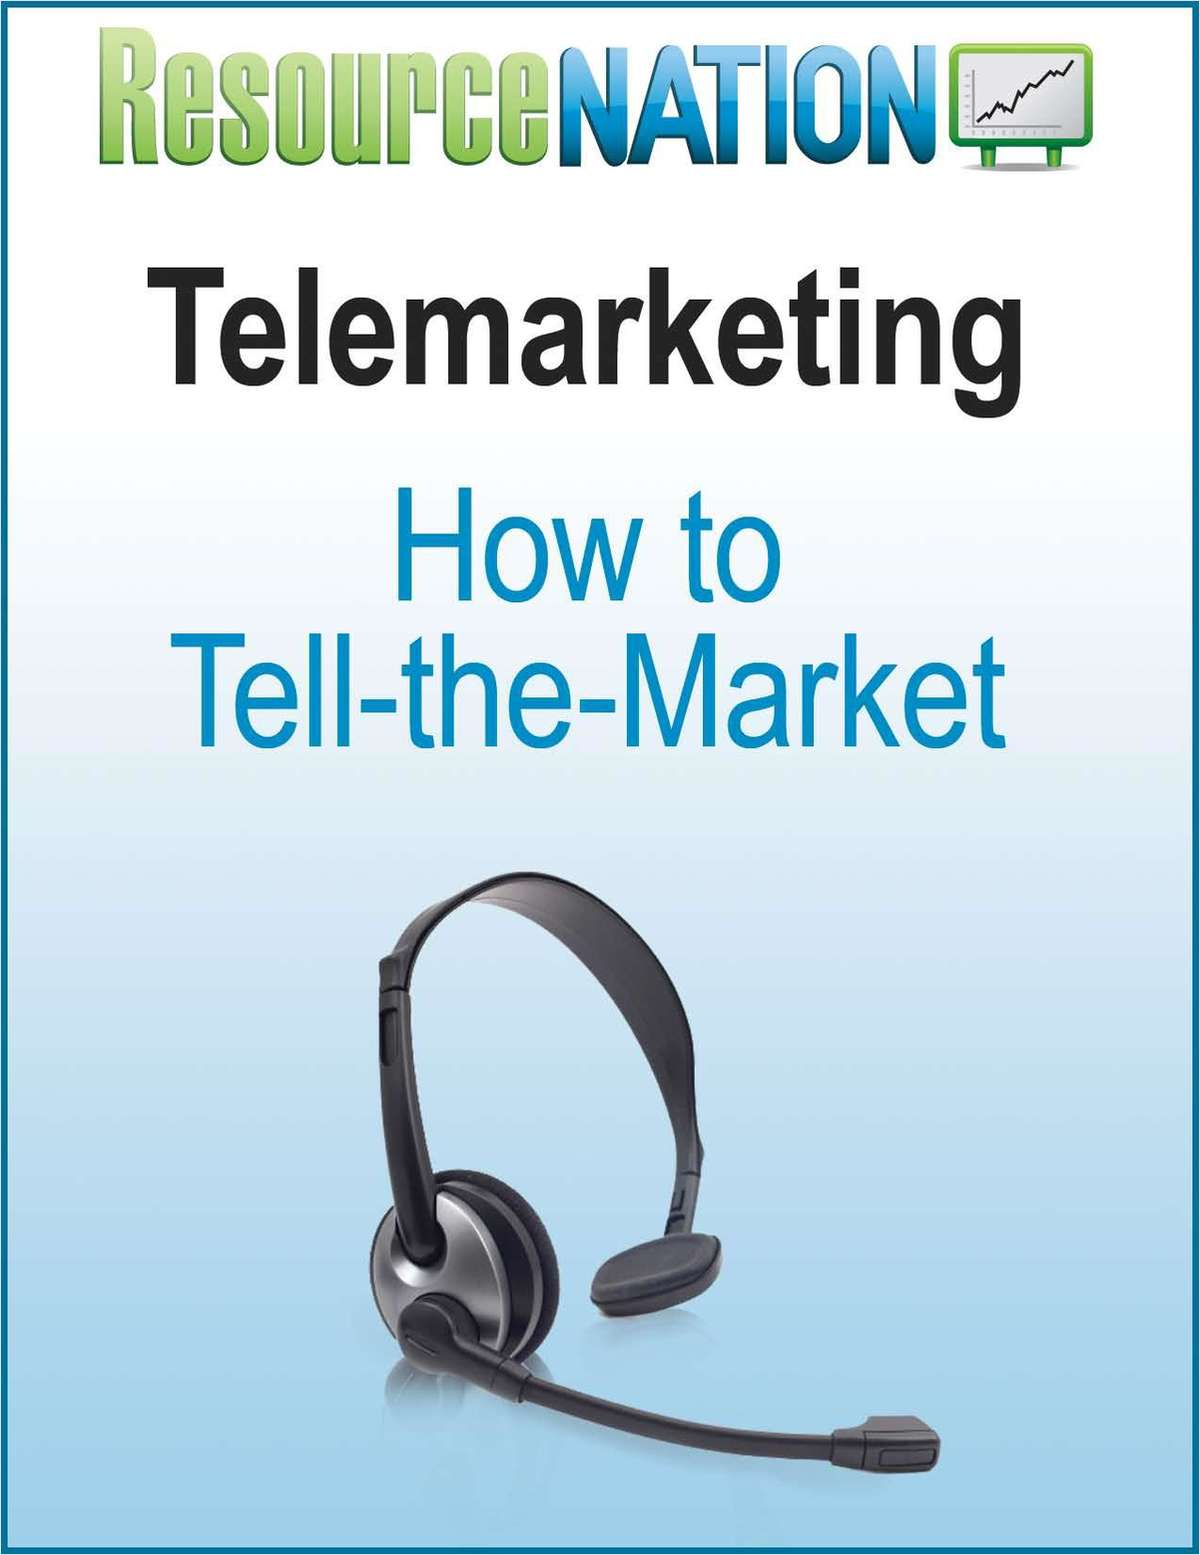 How Telemarketing Can Help Grow Your Business